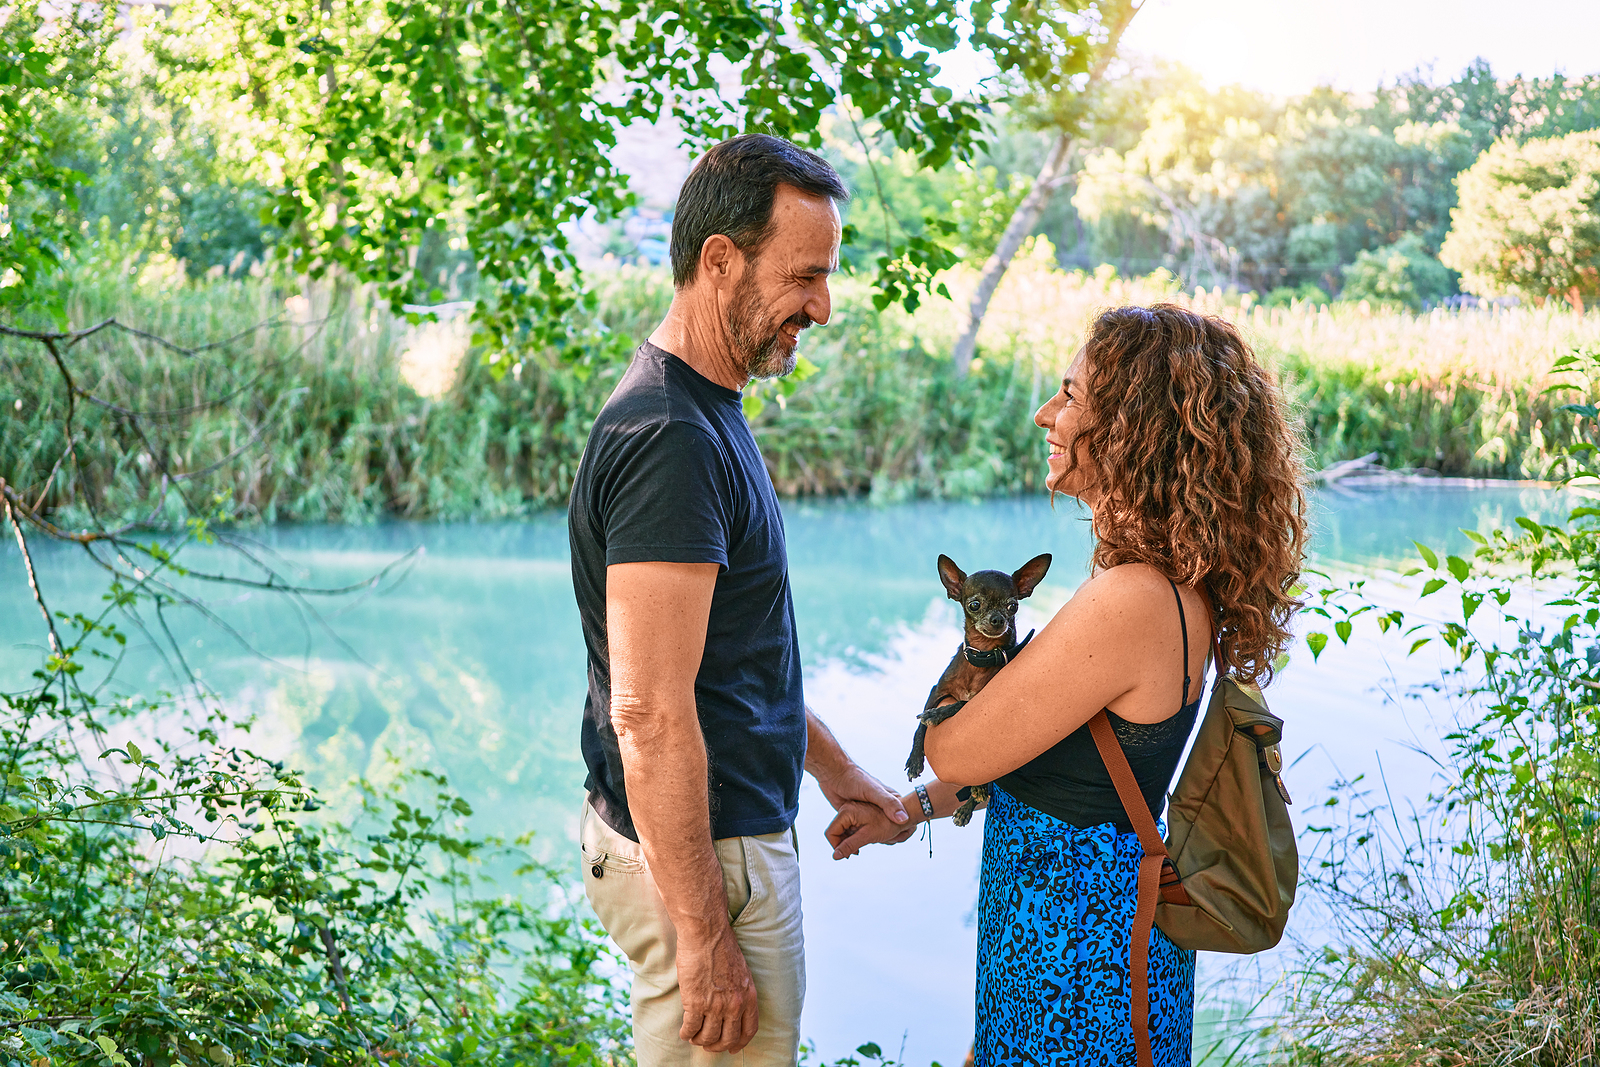 Middle age couple wearing casual clothes standing around river holding chihuahua dog at the park